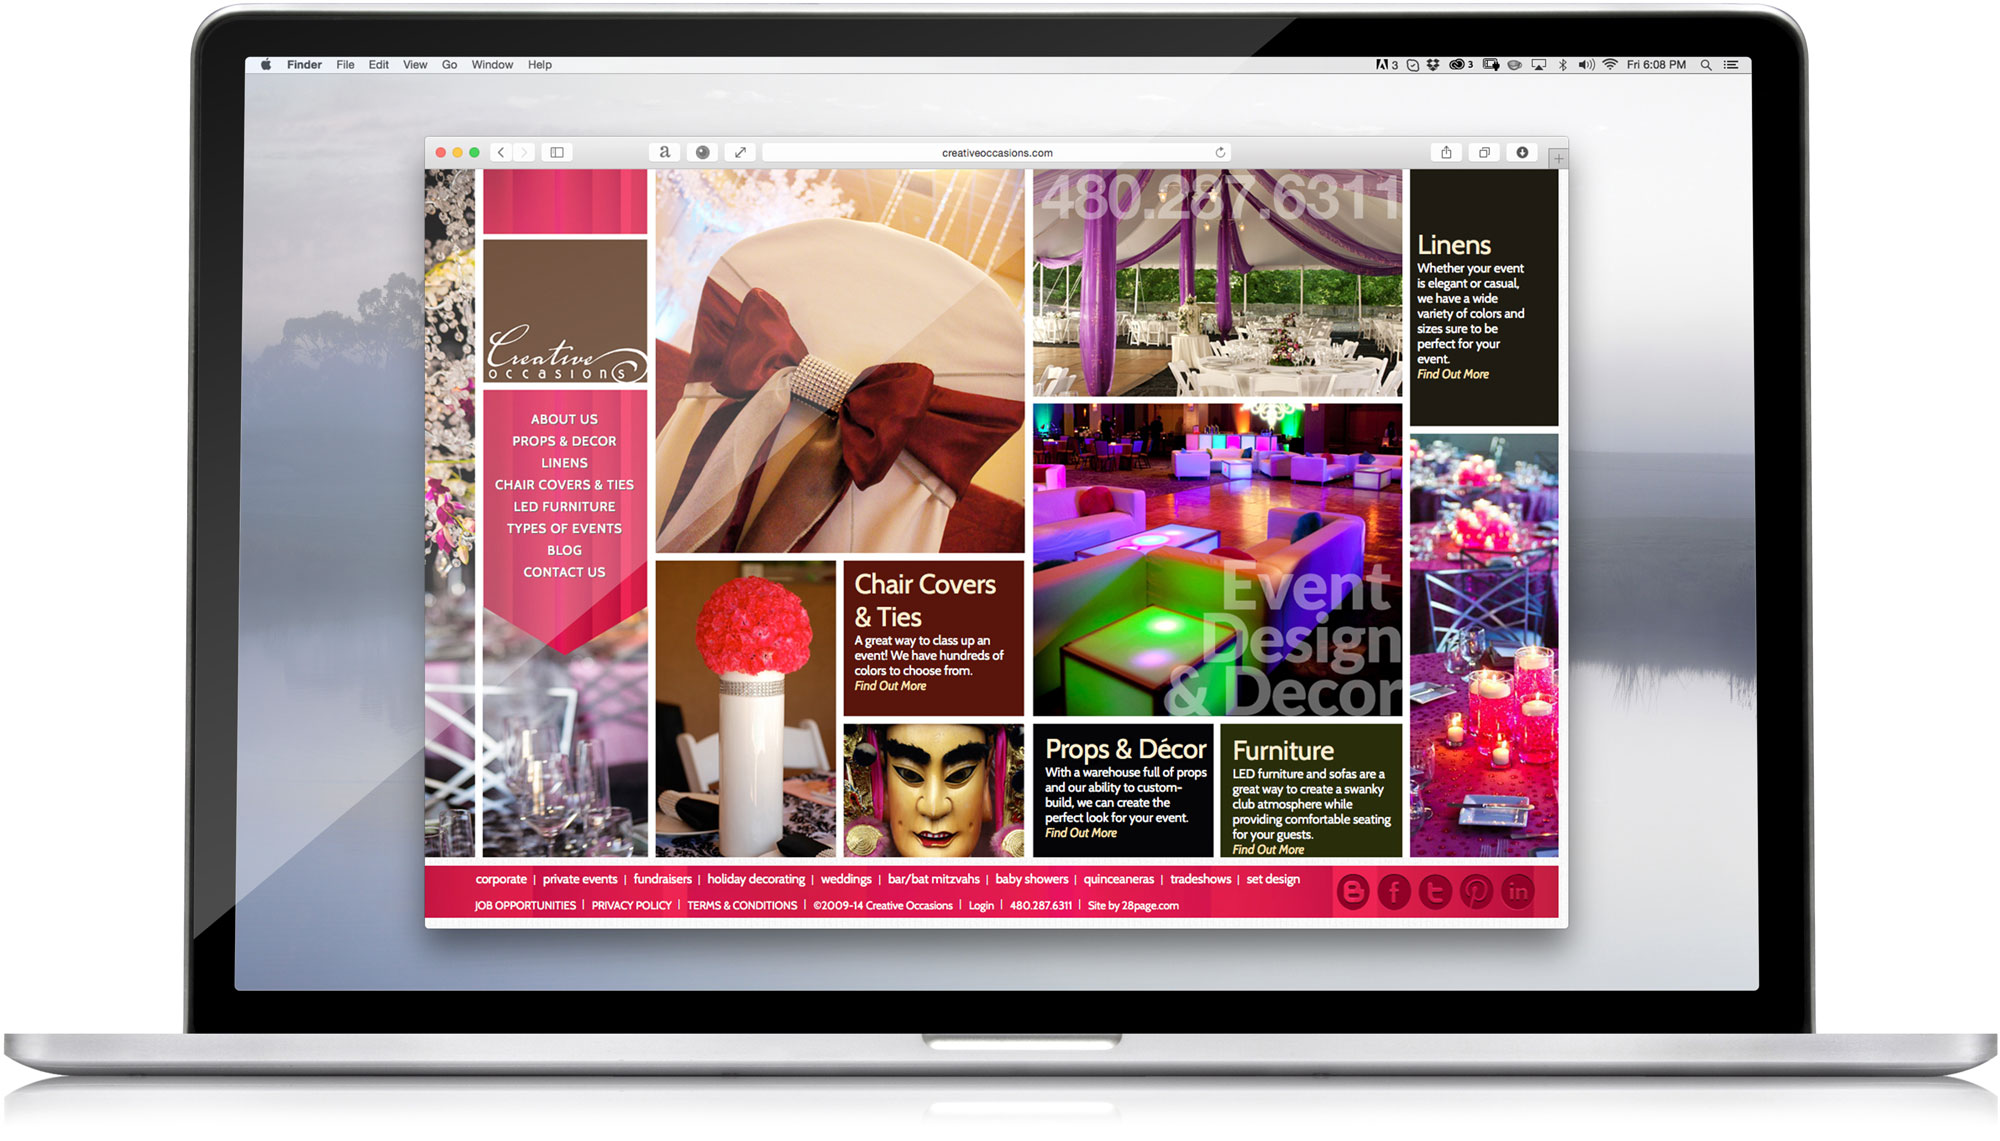 This is the home page of the website. You can visit the actual site at  creativeoccasions.com